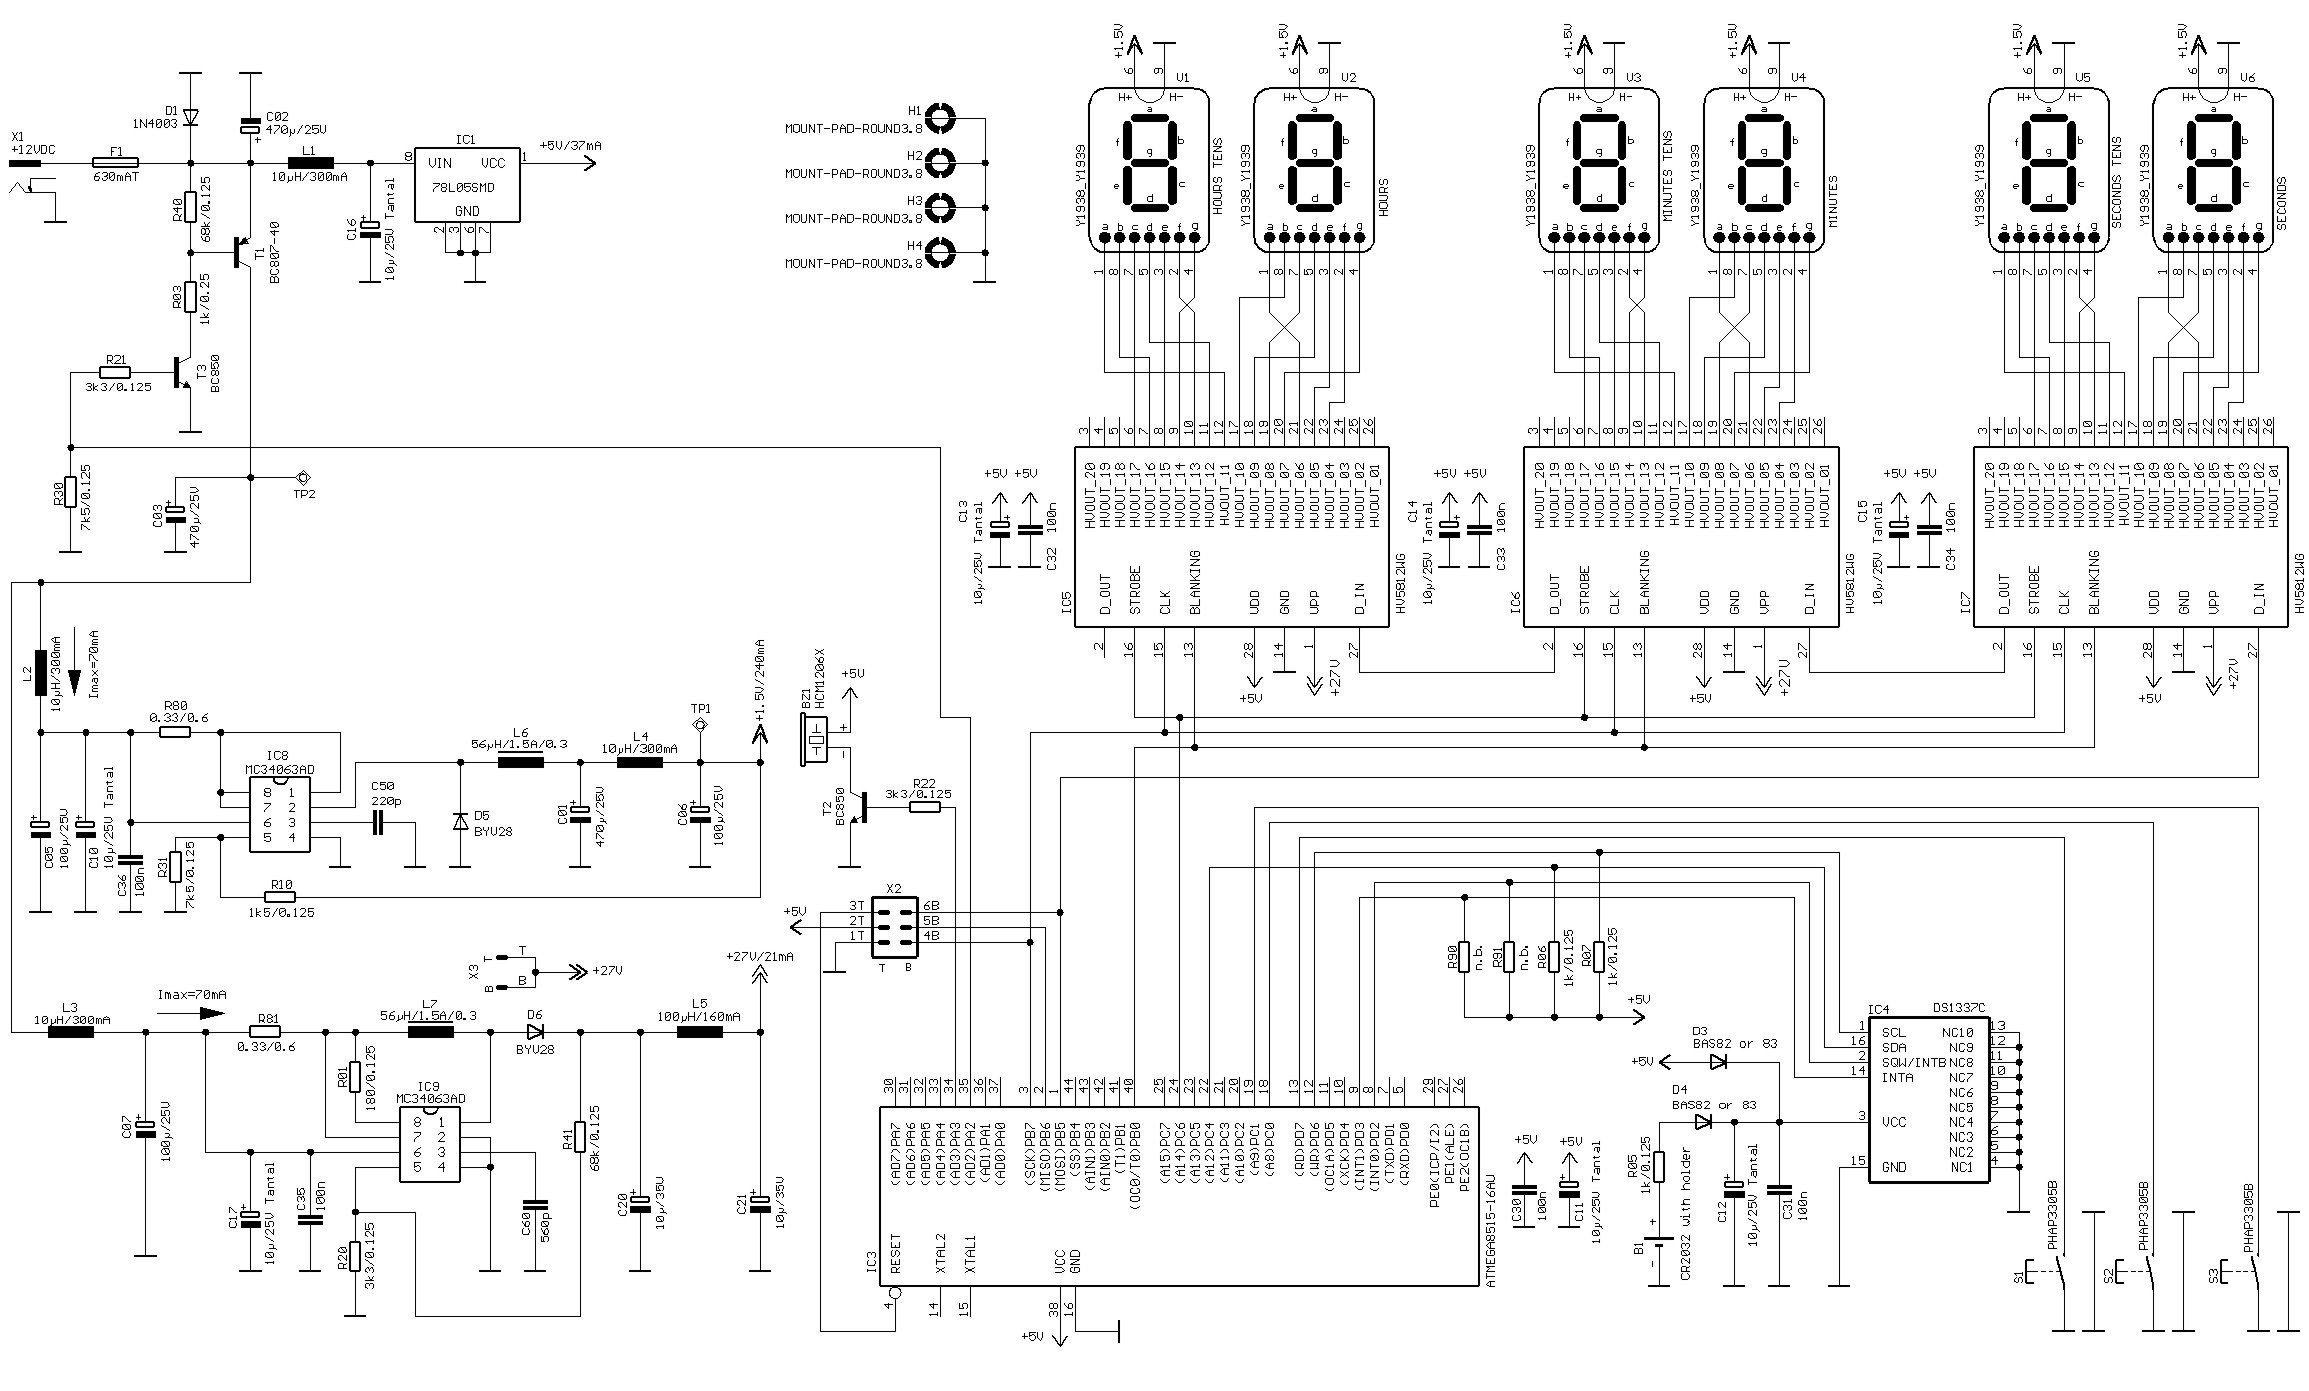 Abb Ach550 Wiring Diagram New Wiring Diagram Image